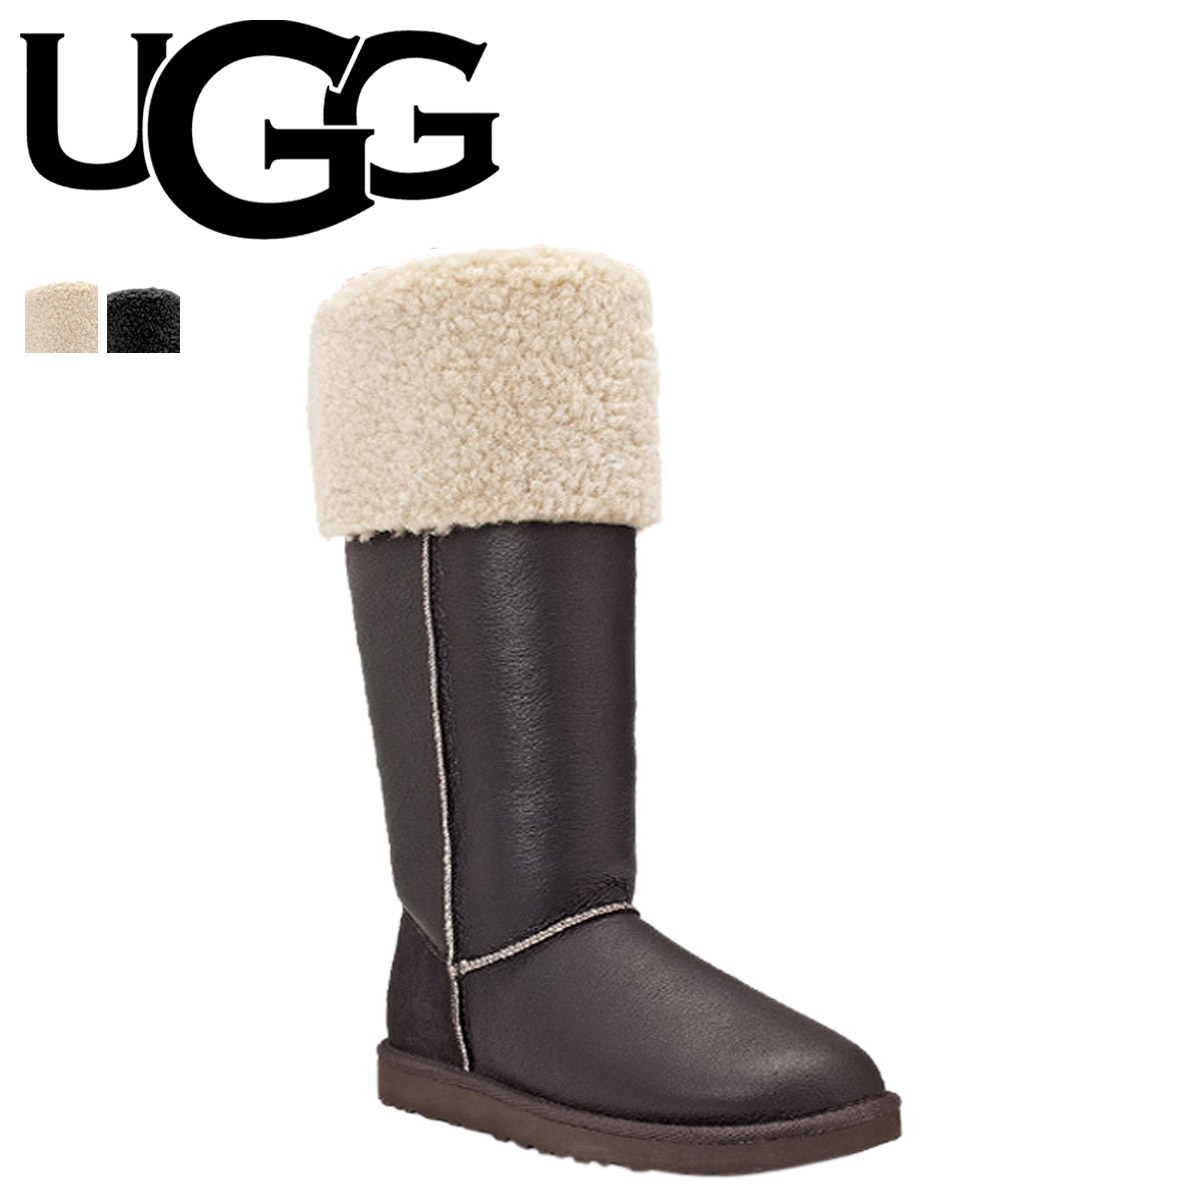 8f5bfc66197 UGG アグベイリーボタンムートンブーツロングブーツ WOMENS OVER THE KNEE BAILEY BUTTON 3175  sheepskin Lady's